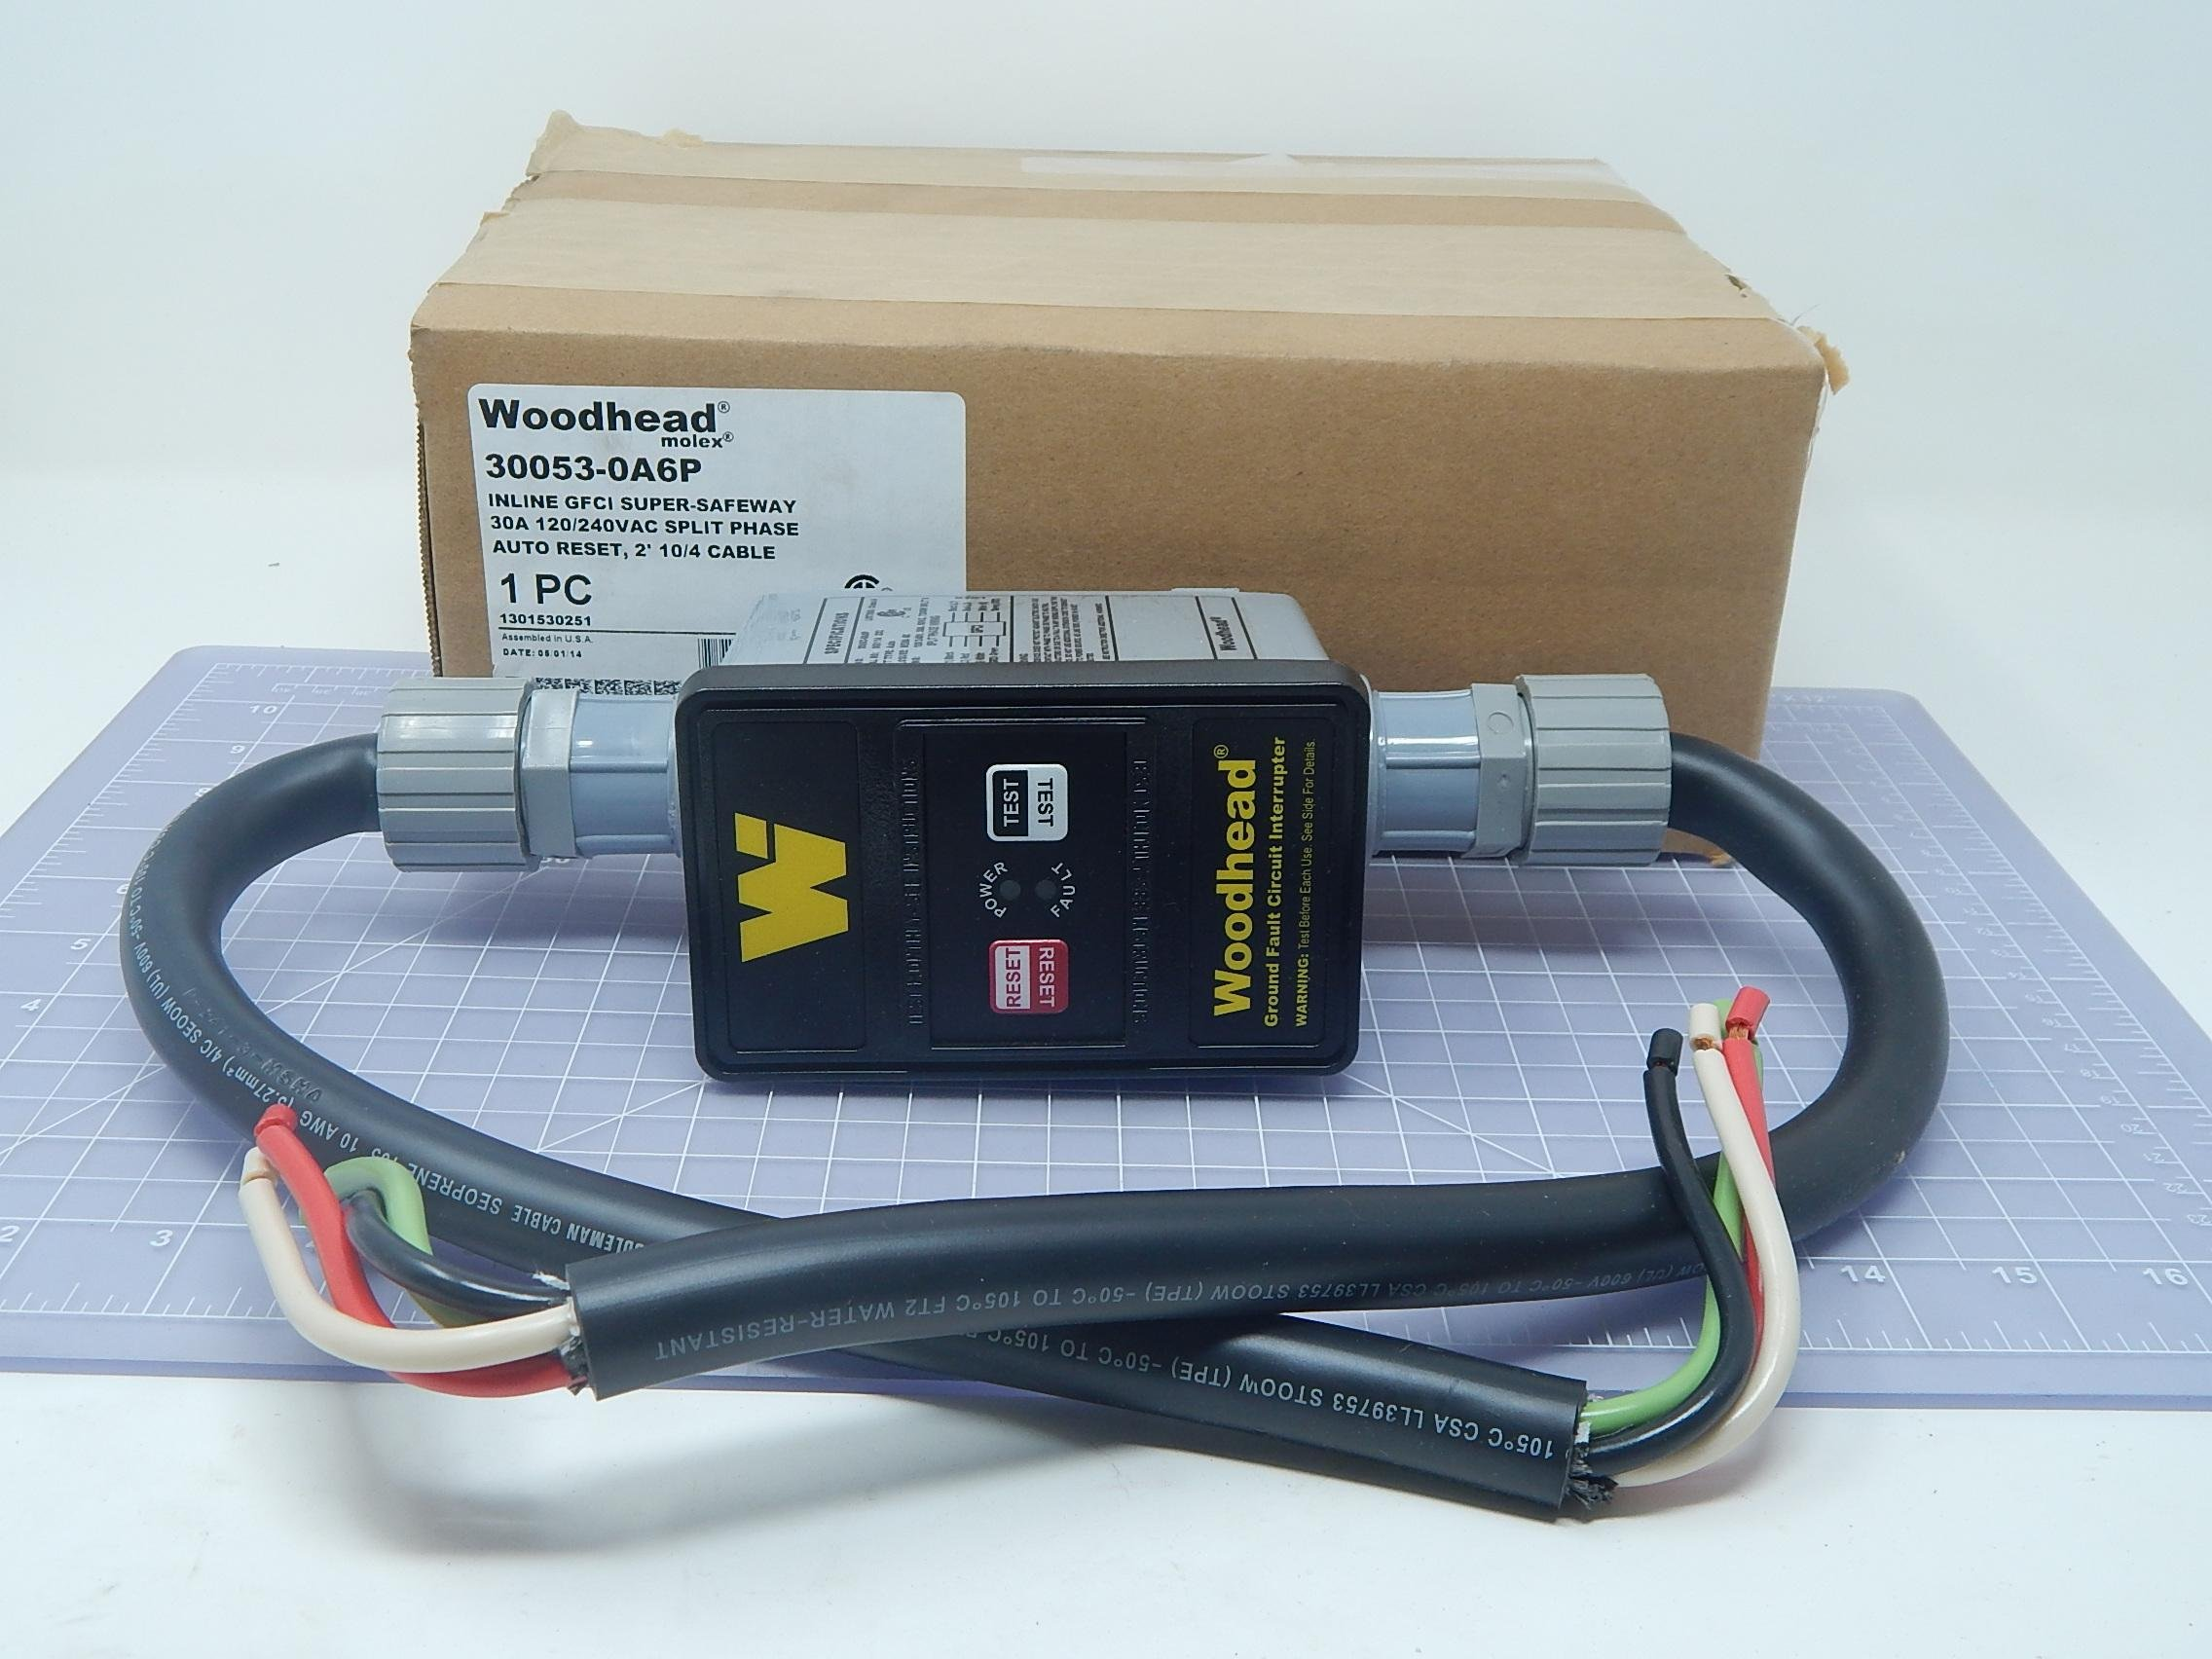 Woodhead 30053-0A6P Ground Fault Circuit Interrupter super-Safeway In-Line Industrial GFCI T107630